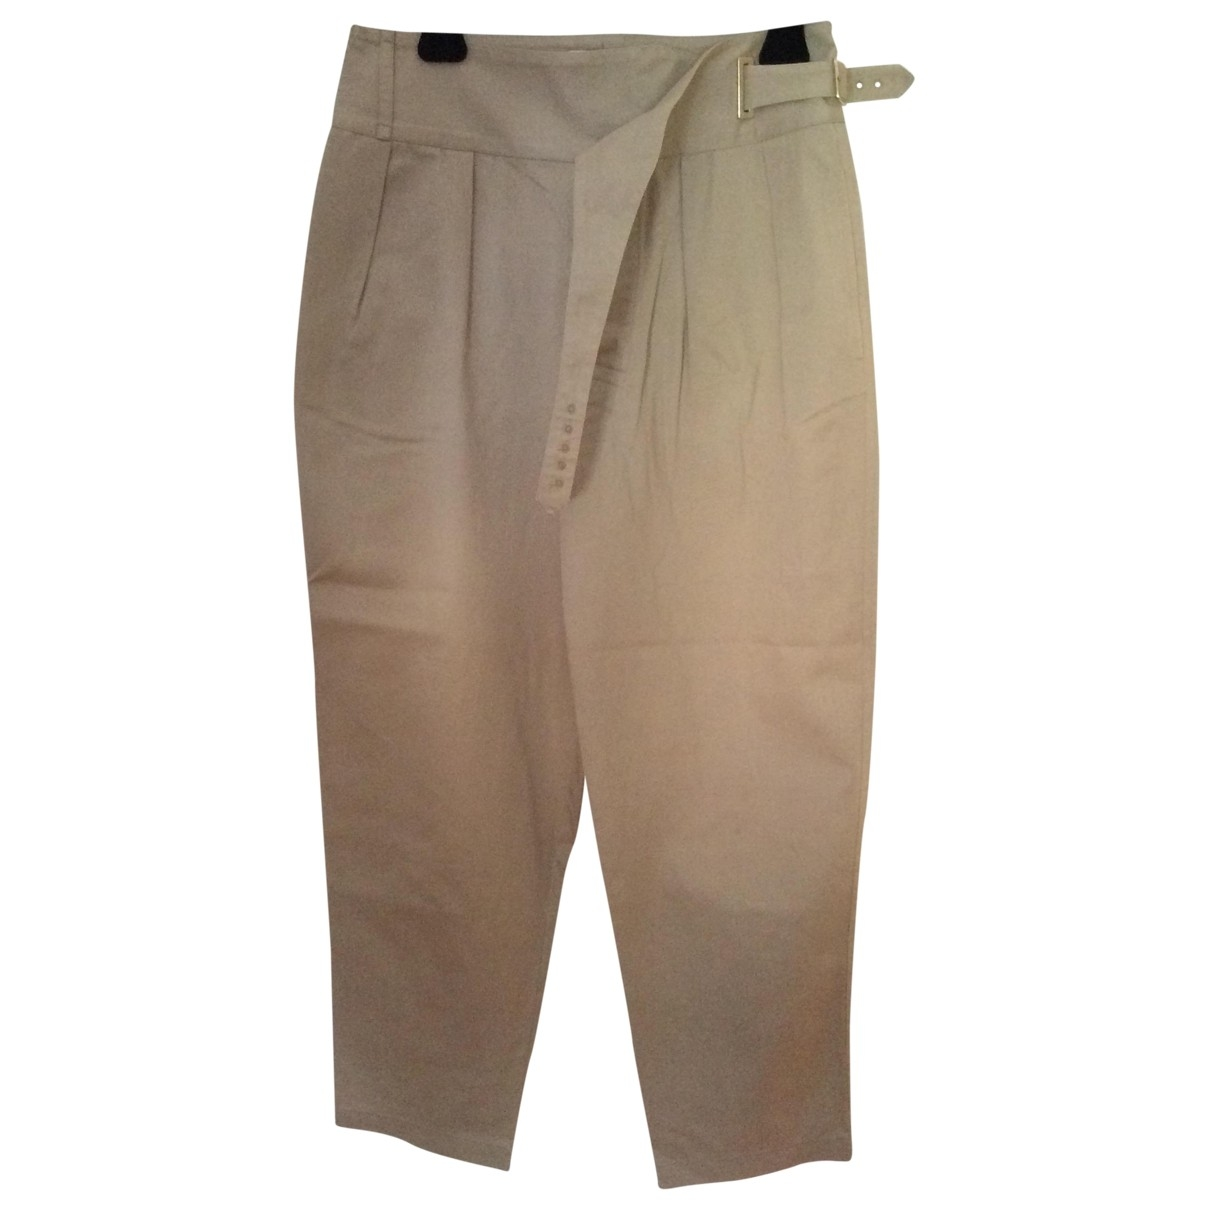 Givenchy \N Beige Cotton Trousers for Women 38 FR